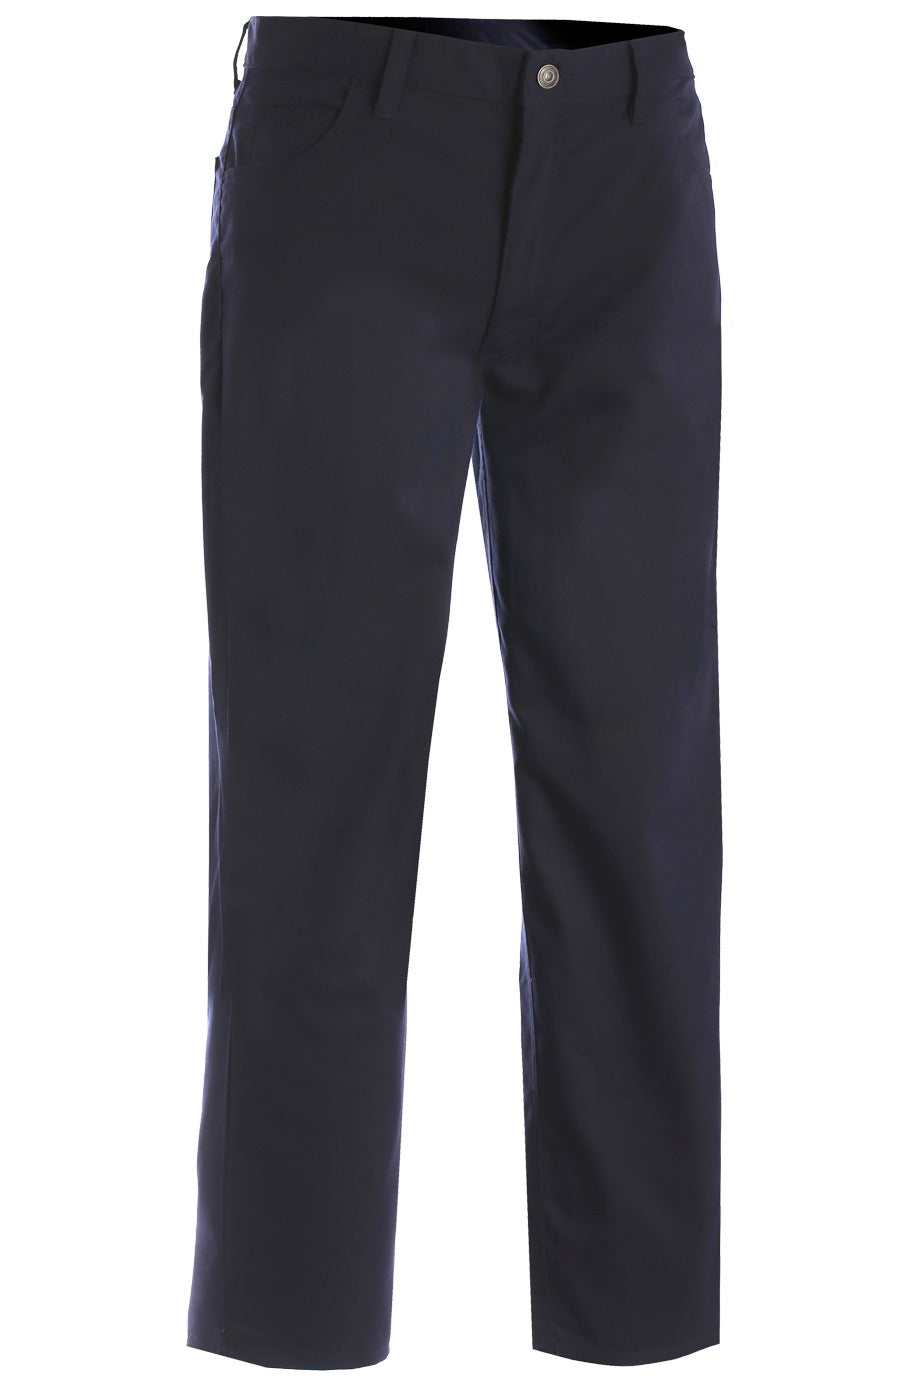 Men's Navy Rugged Comfort Flat Front Pant